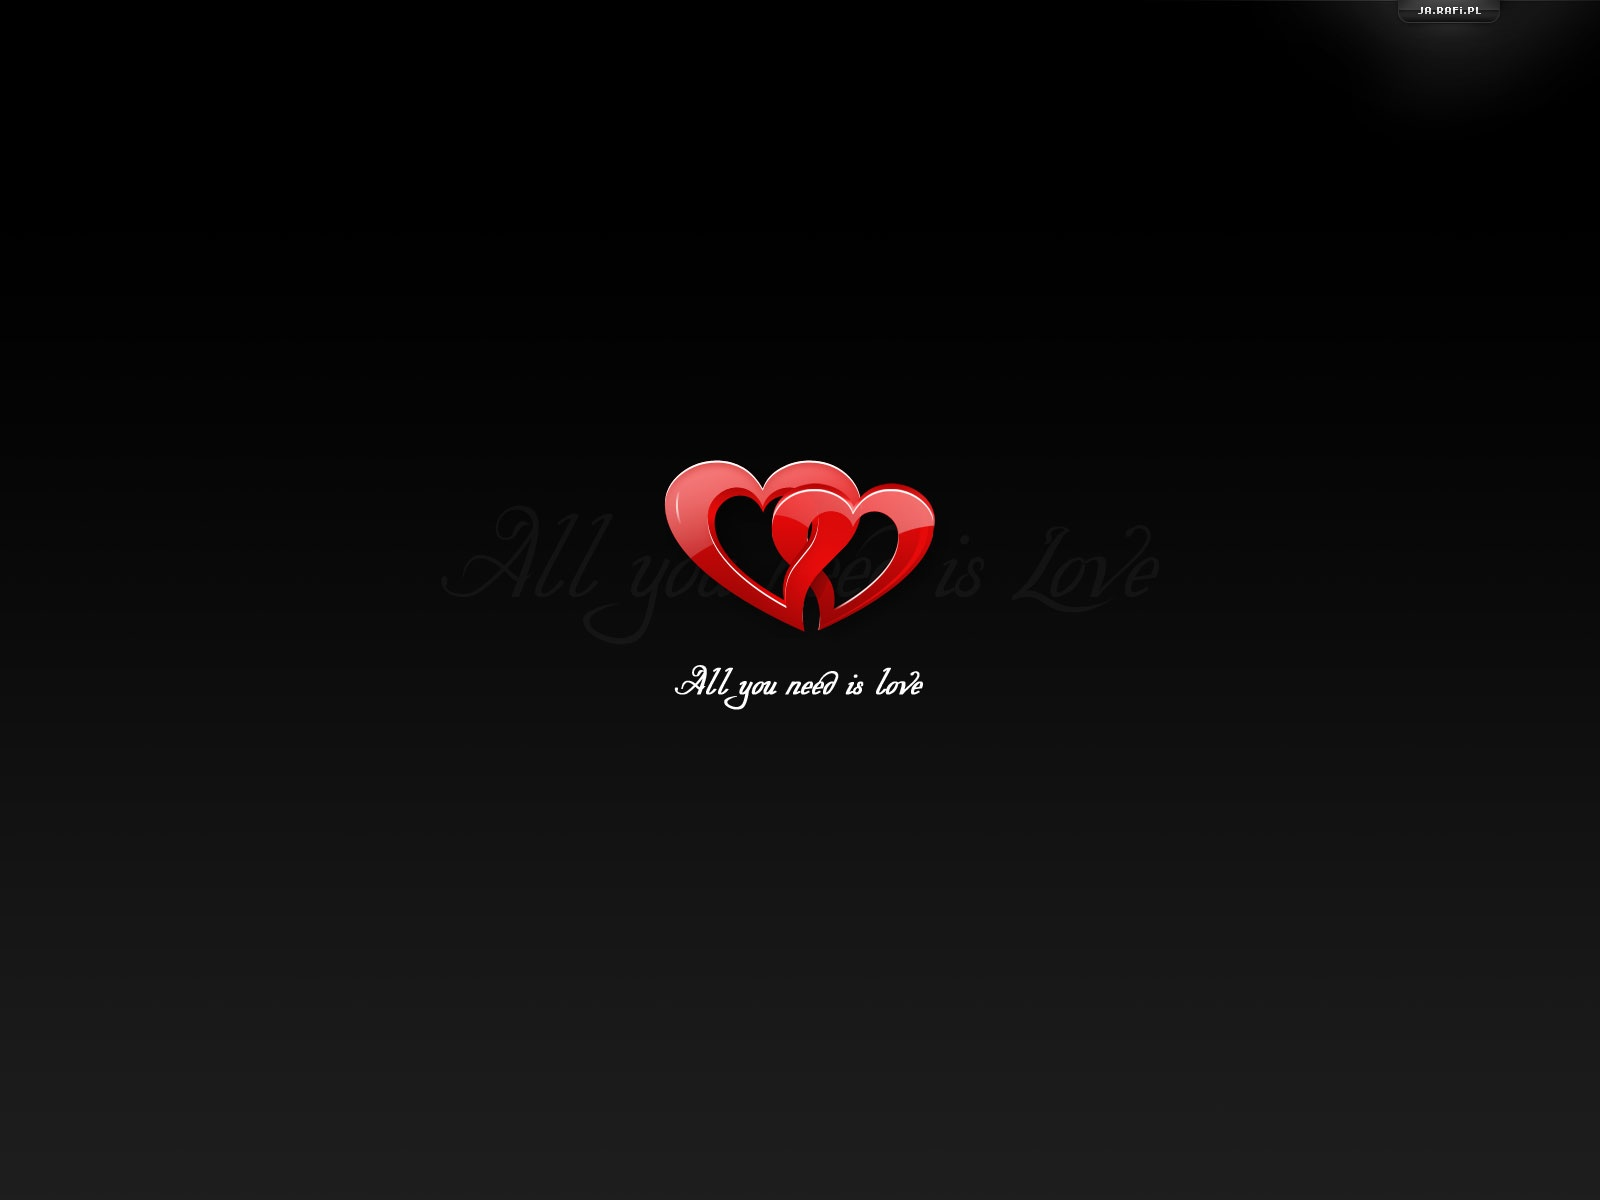 Wallpaper All My Love Is For You : 1600x1200 All you need is love desktop Pc and Mac wallpaper